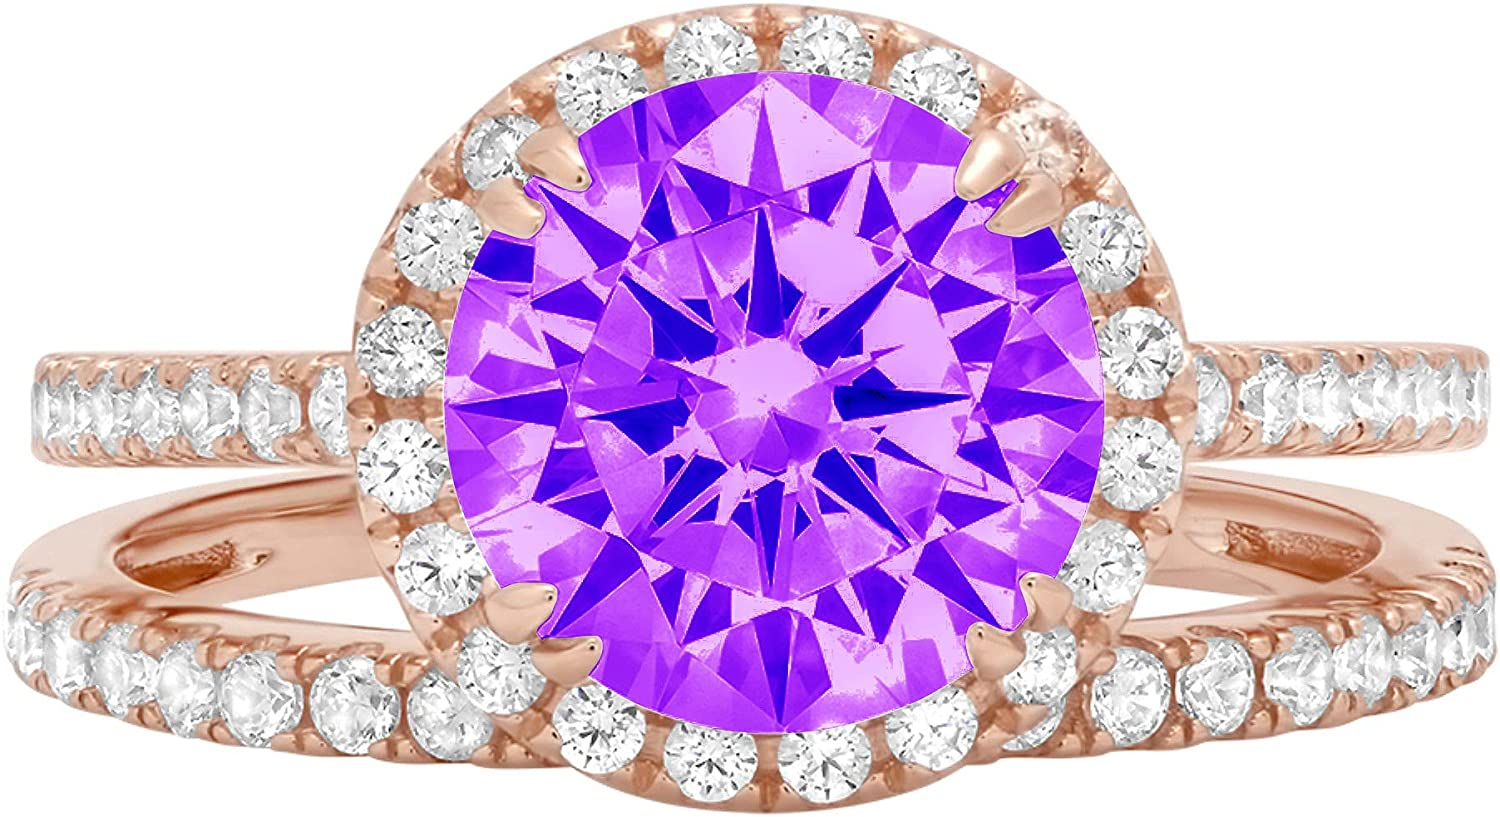 2.66ct Round Cut Halo Pave Solitaire with Accent VVS1 Ideal Natural Purple Amethyst Engagement Promise Designer Anniversary Wedding Bridal Ring band set 14k Rose Gold